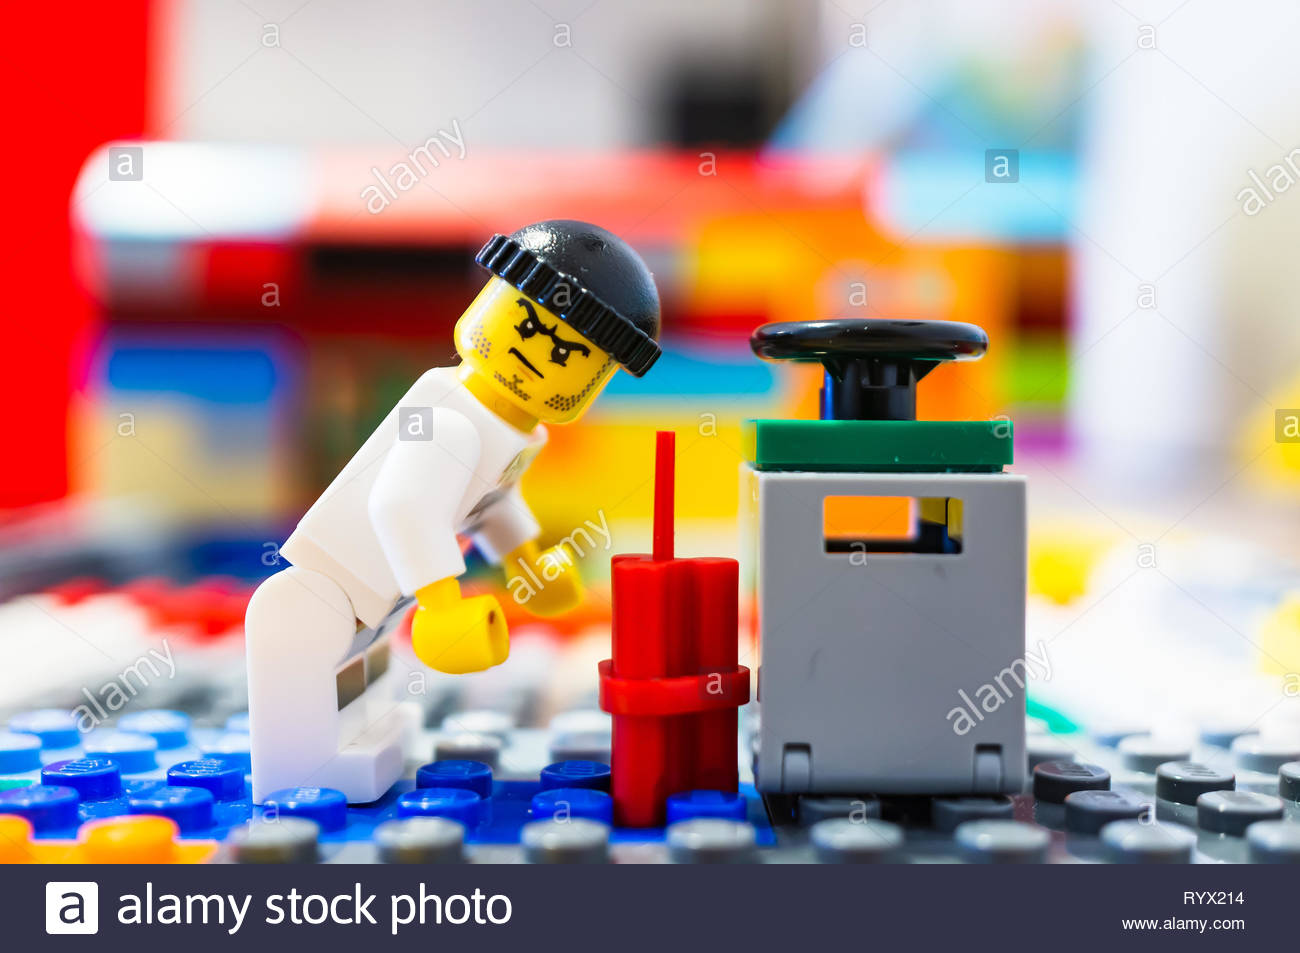 Poznan, Poland - March 14, 2019: Lego escaped prisoner tries to blow up a safe with dynamite. Stock Photo